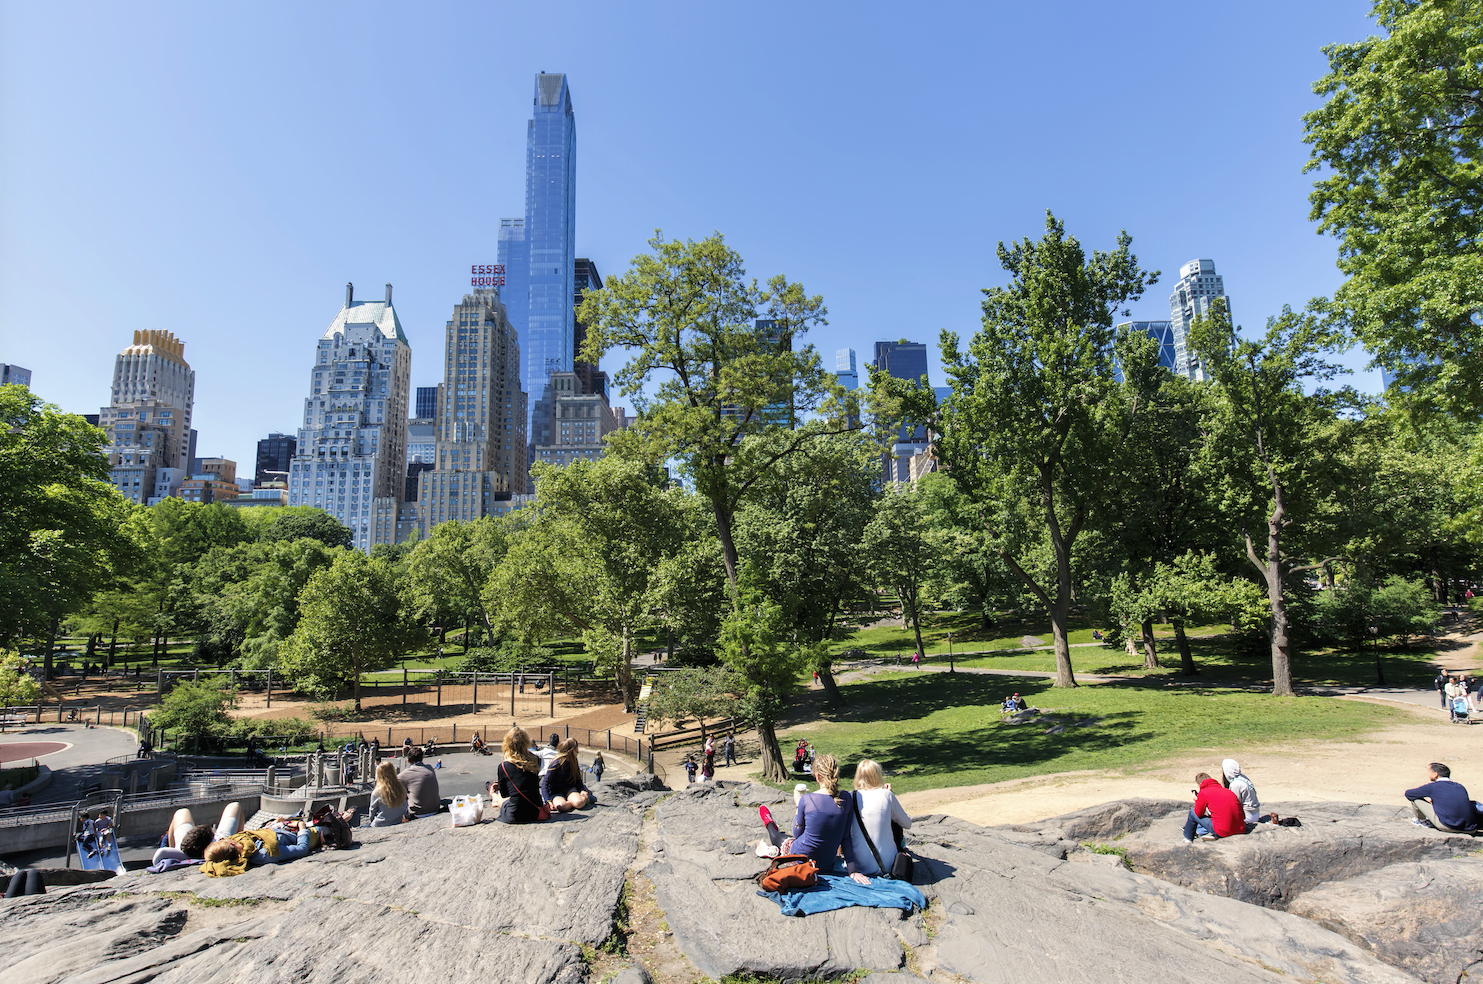 Get ready for 70 degree weather in New York on Wednesday